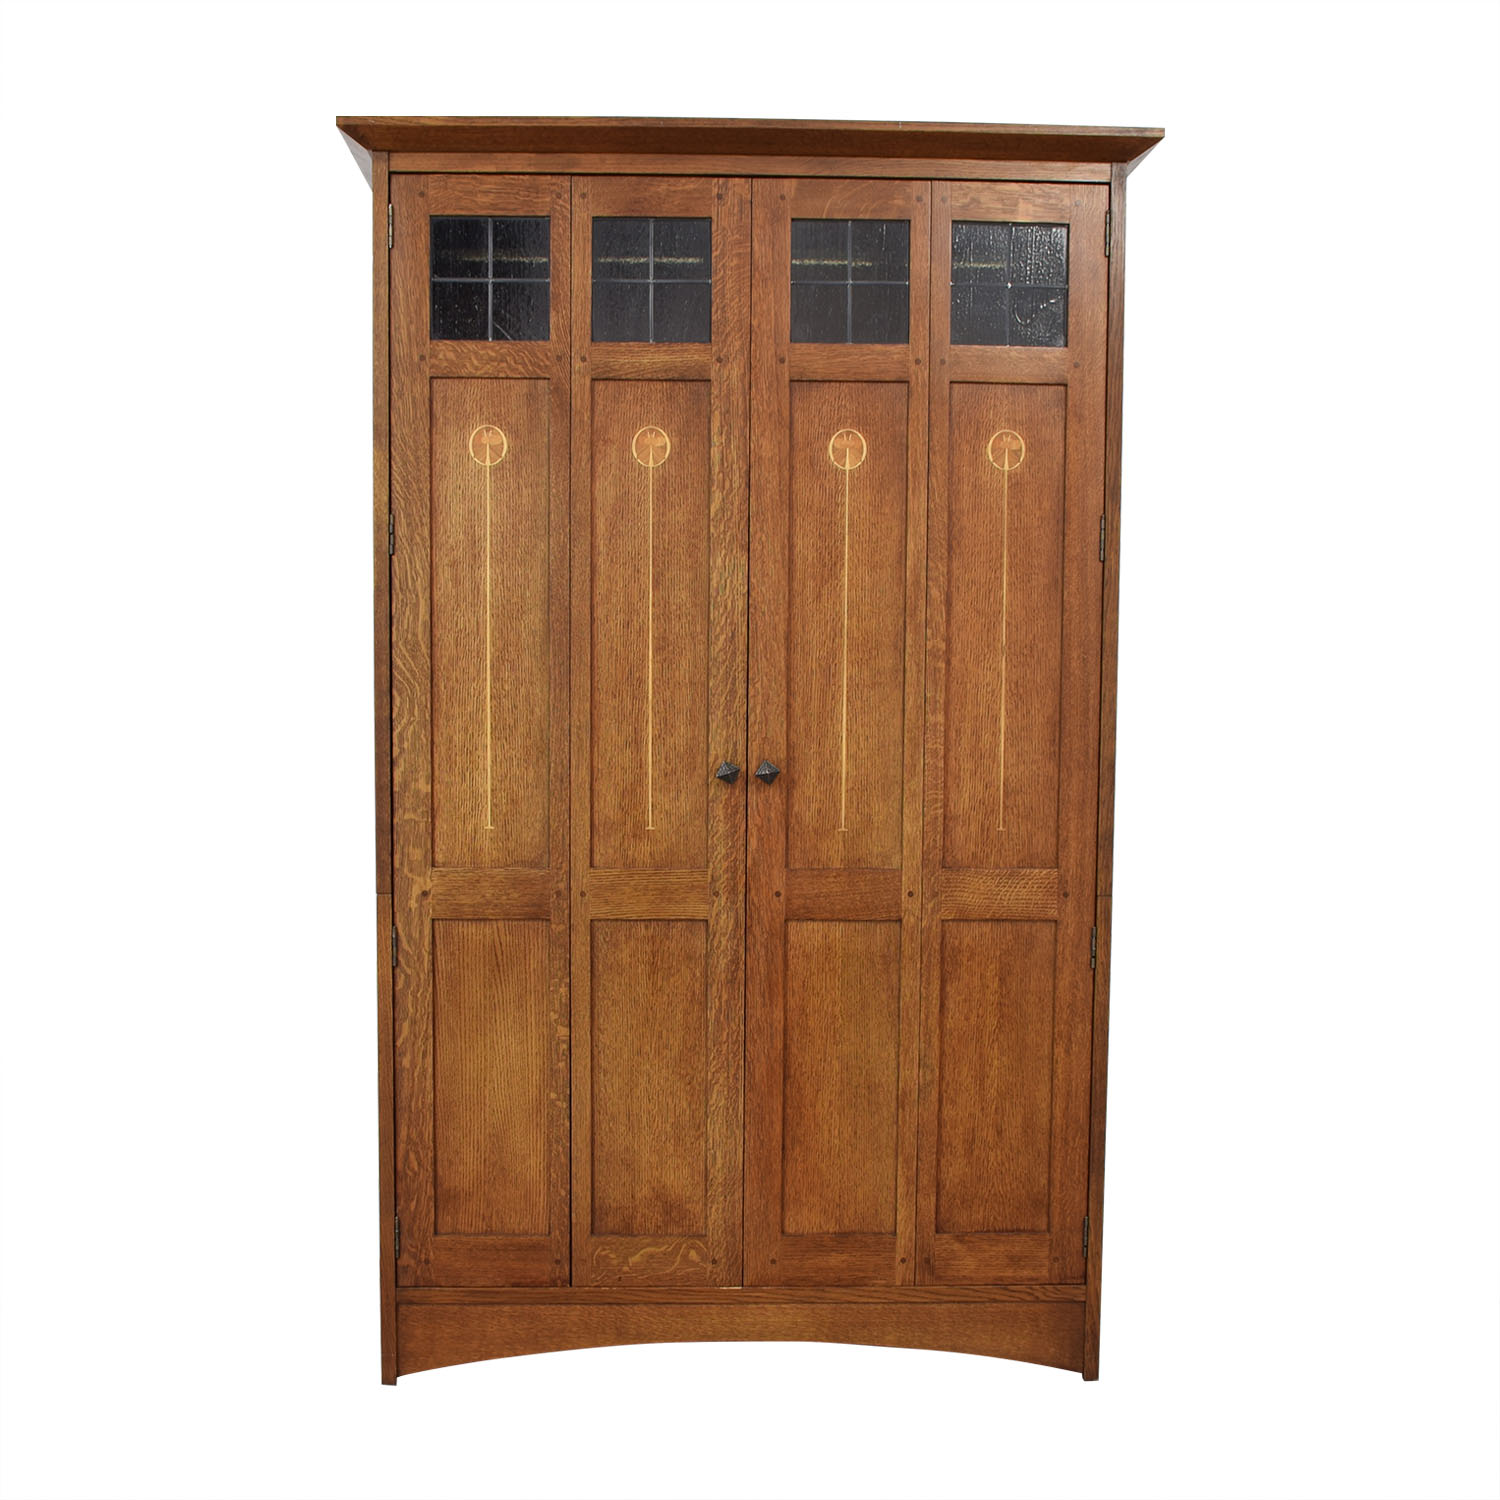 74 Off Stickley Furniture Stickley Furniture Wardrobe Storage